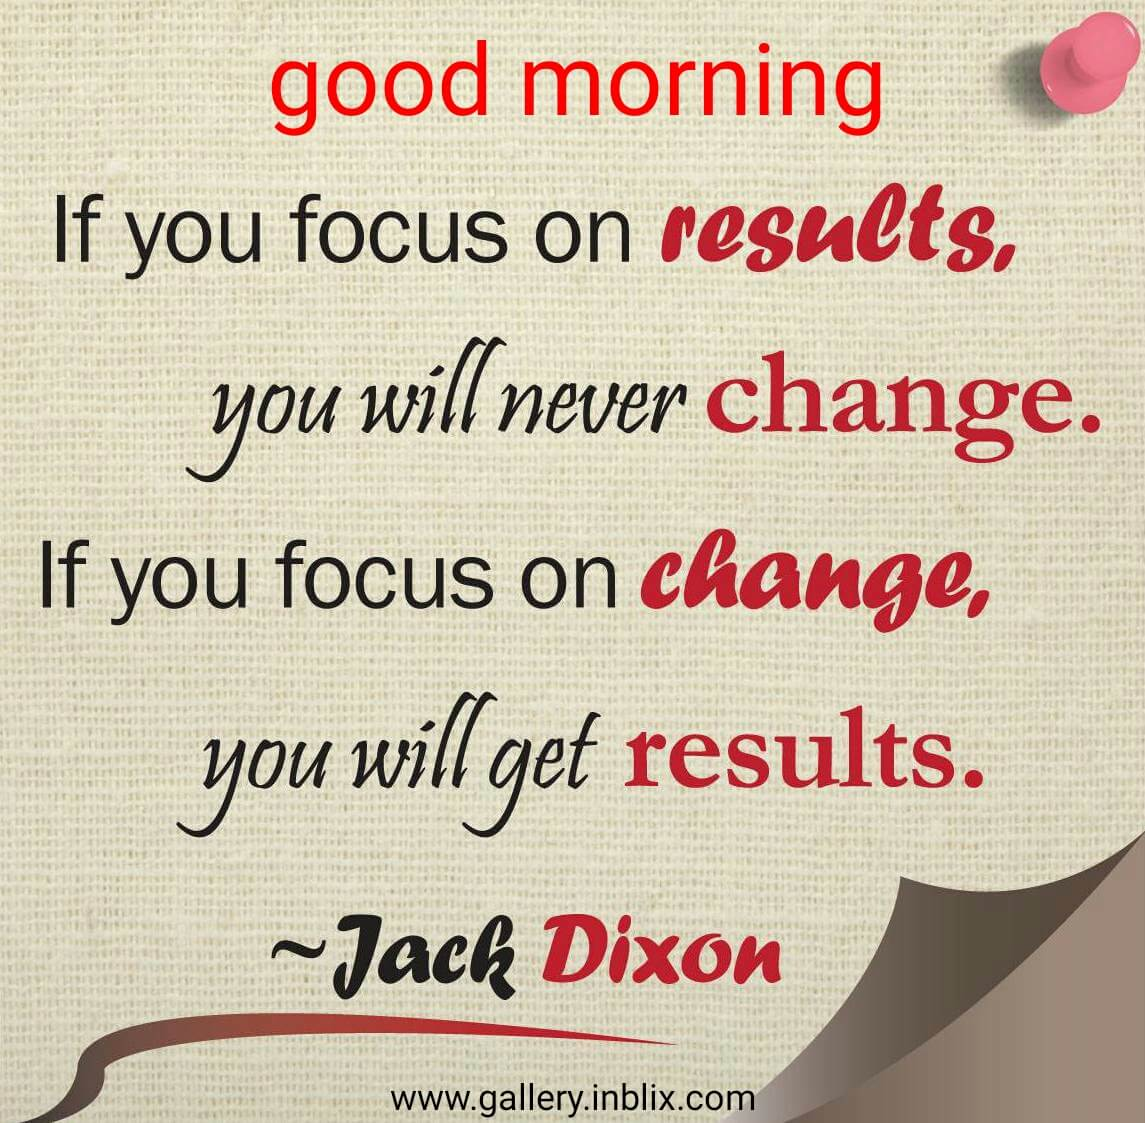 If you focus on results, you will never change. If you focus on change, you will get results.